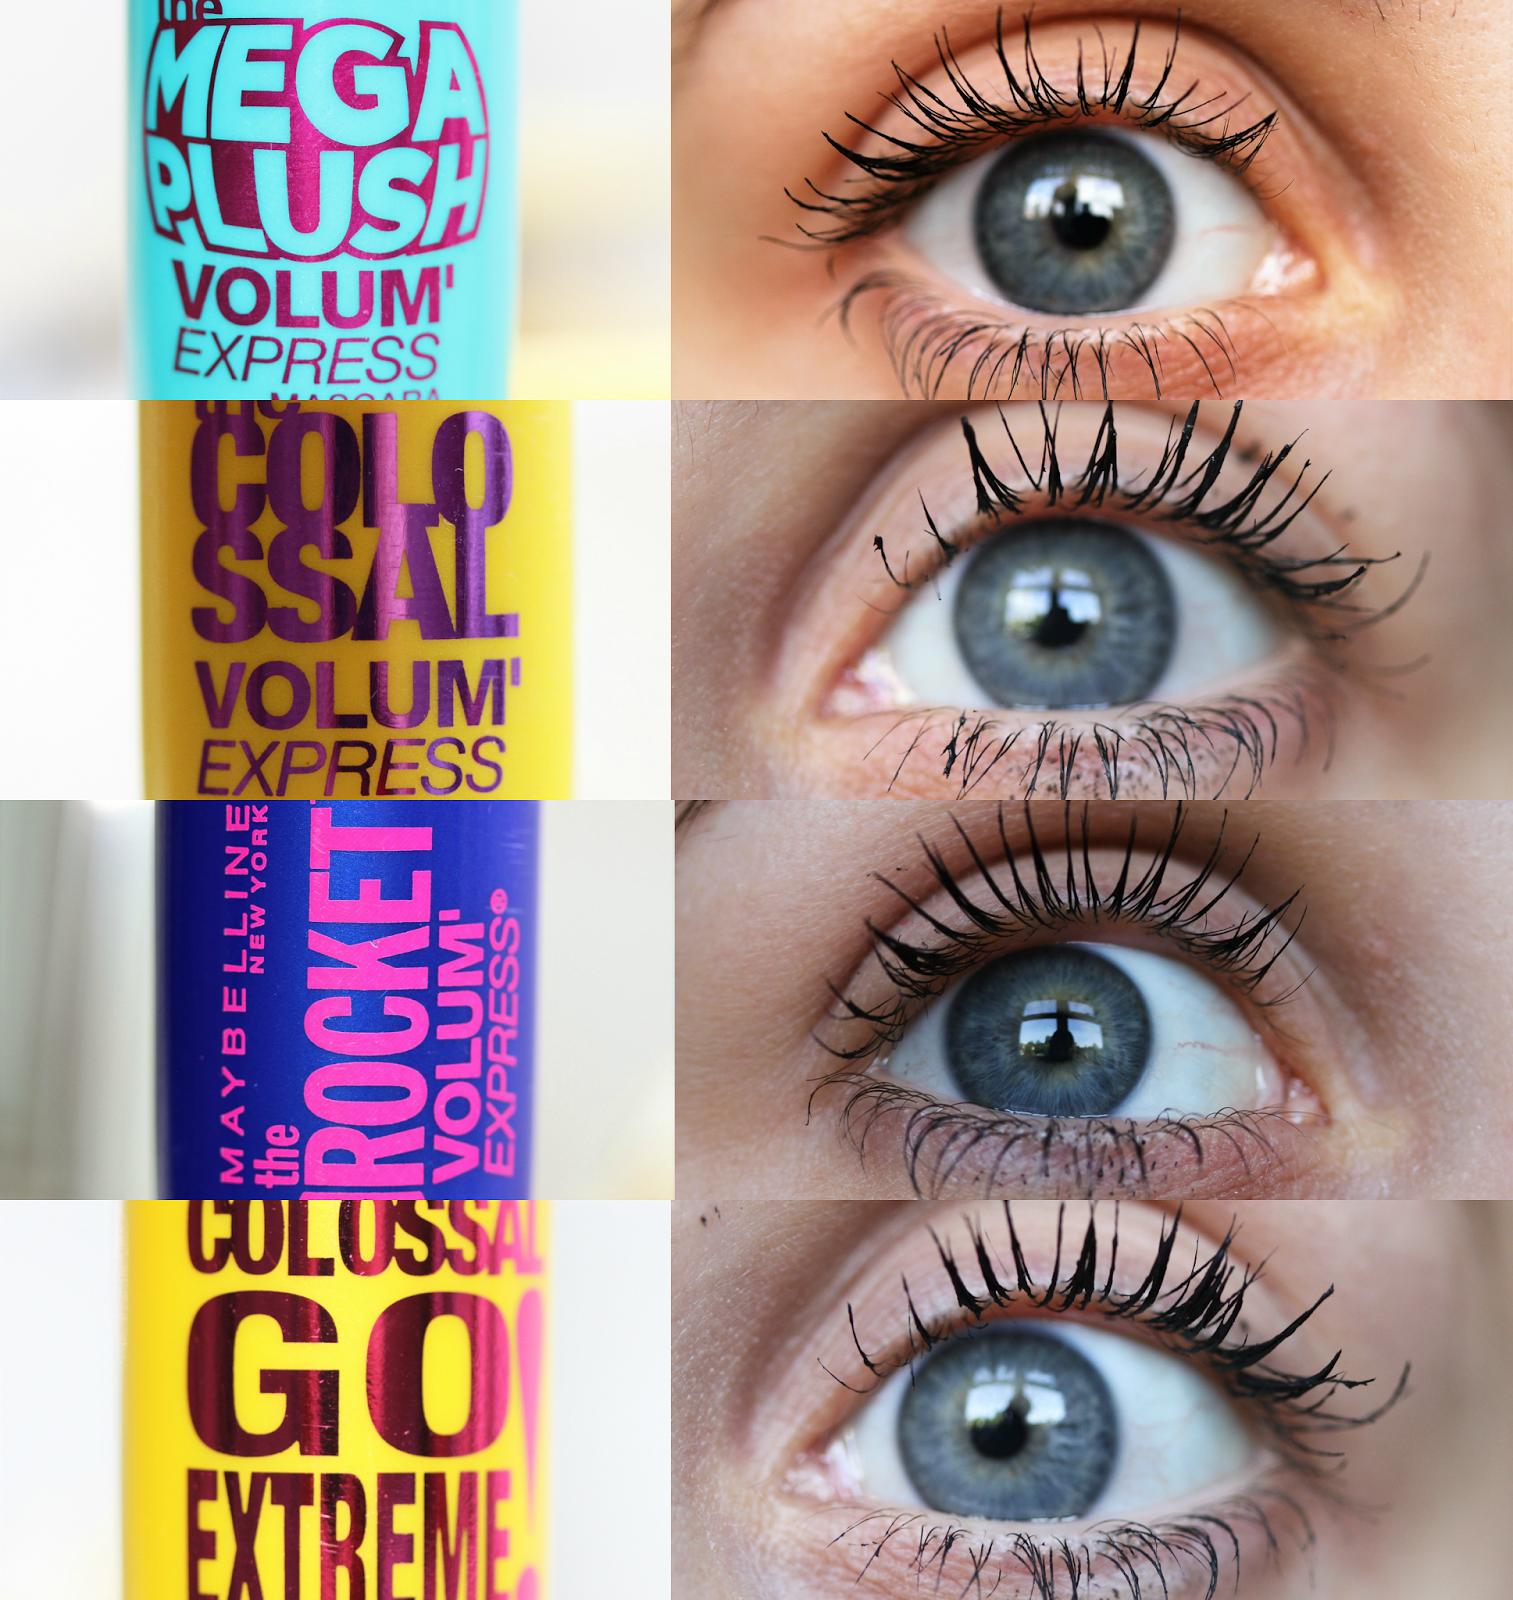 6b6536918a2 Battle of the Maybelline Mascaras (Lola and Behold) | Makeup ...